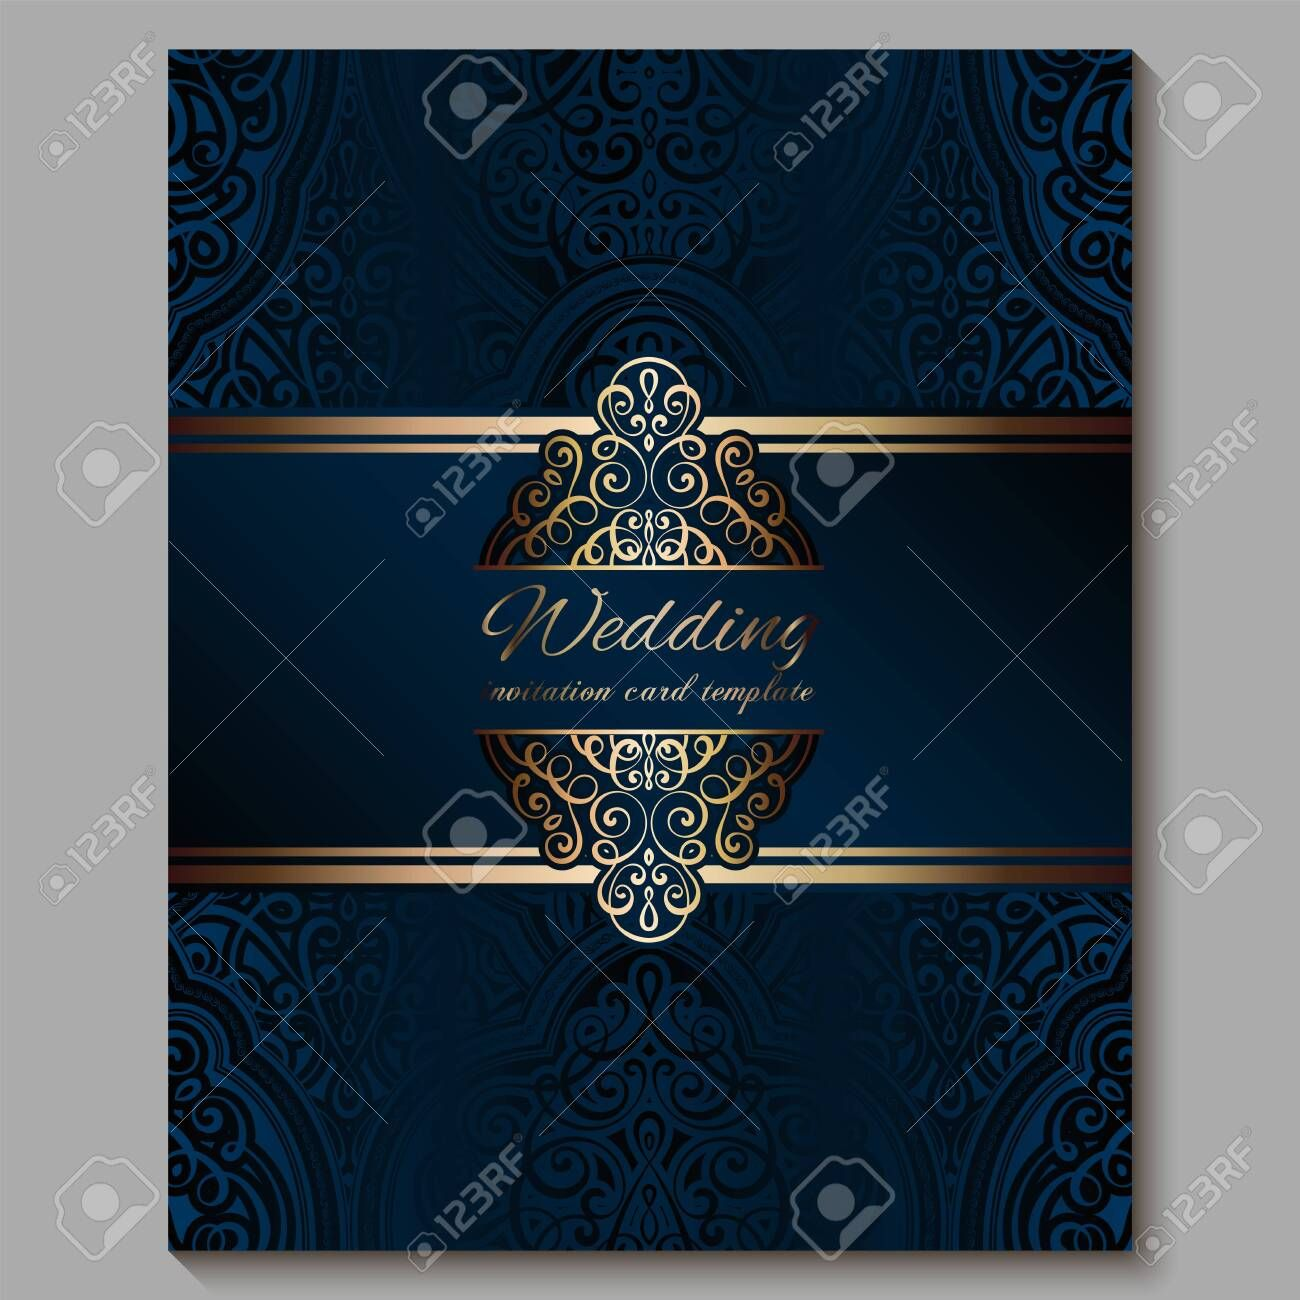 Wedding Invitation Card With Gold Shiny Eastern And Baroque Rich Foliage Royal Blue Ornate Islamic Bac Wedding Invitation Cards Card Template Invitation Cards